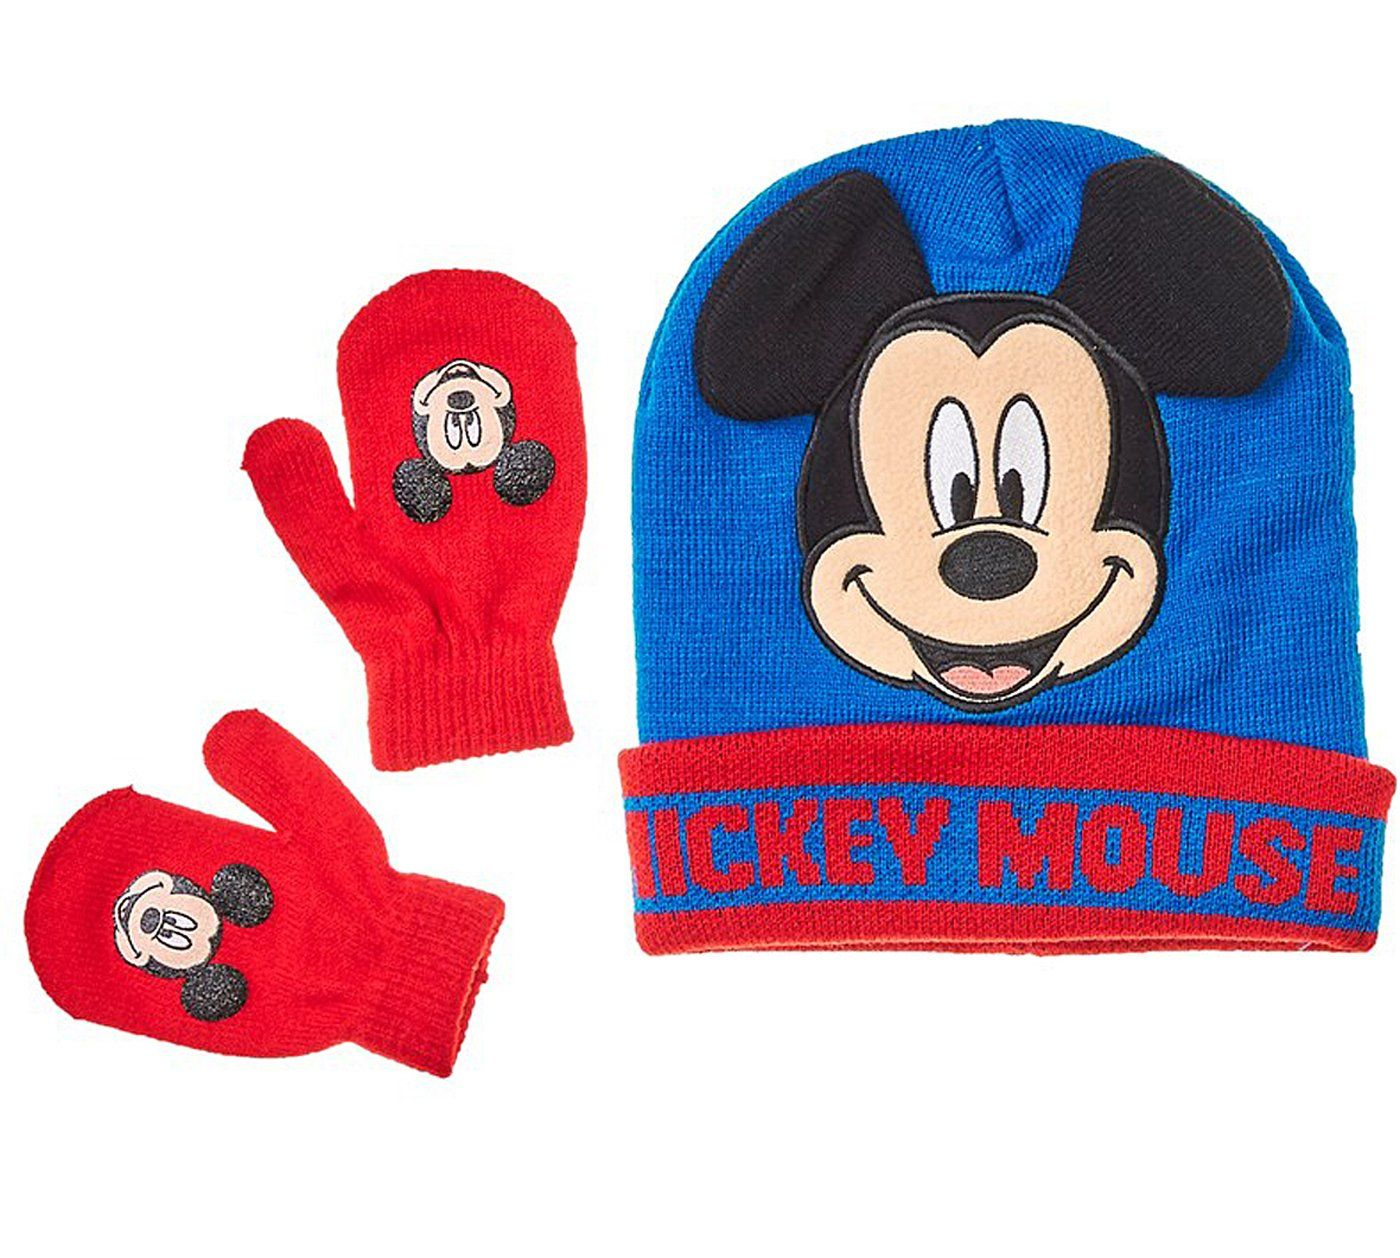 ae9aa38a885 Mickey Mouse Little Toddler Boys Winter Hat   Mitten Set. Set includes winter  hat and mitten set. Royal blue and red hat with Mickey face on the front